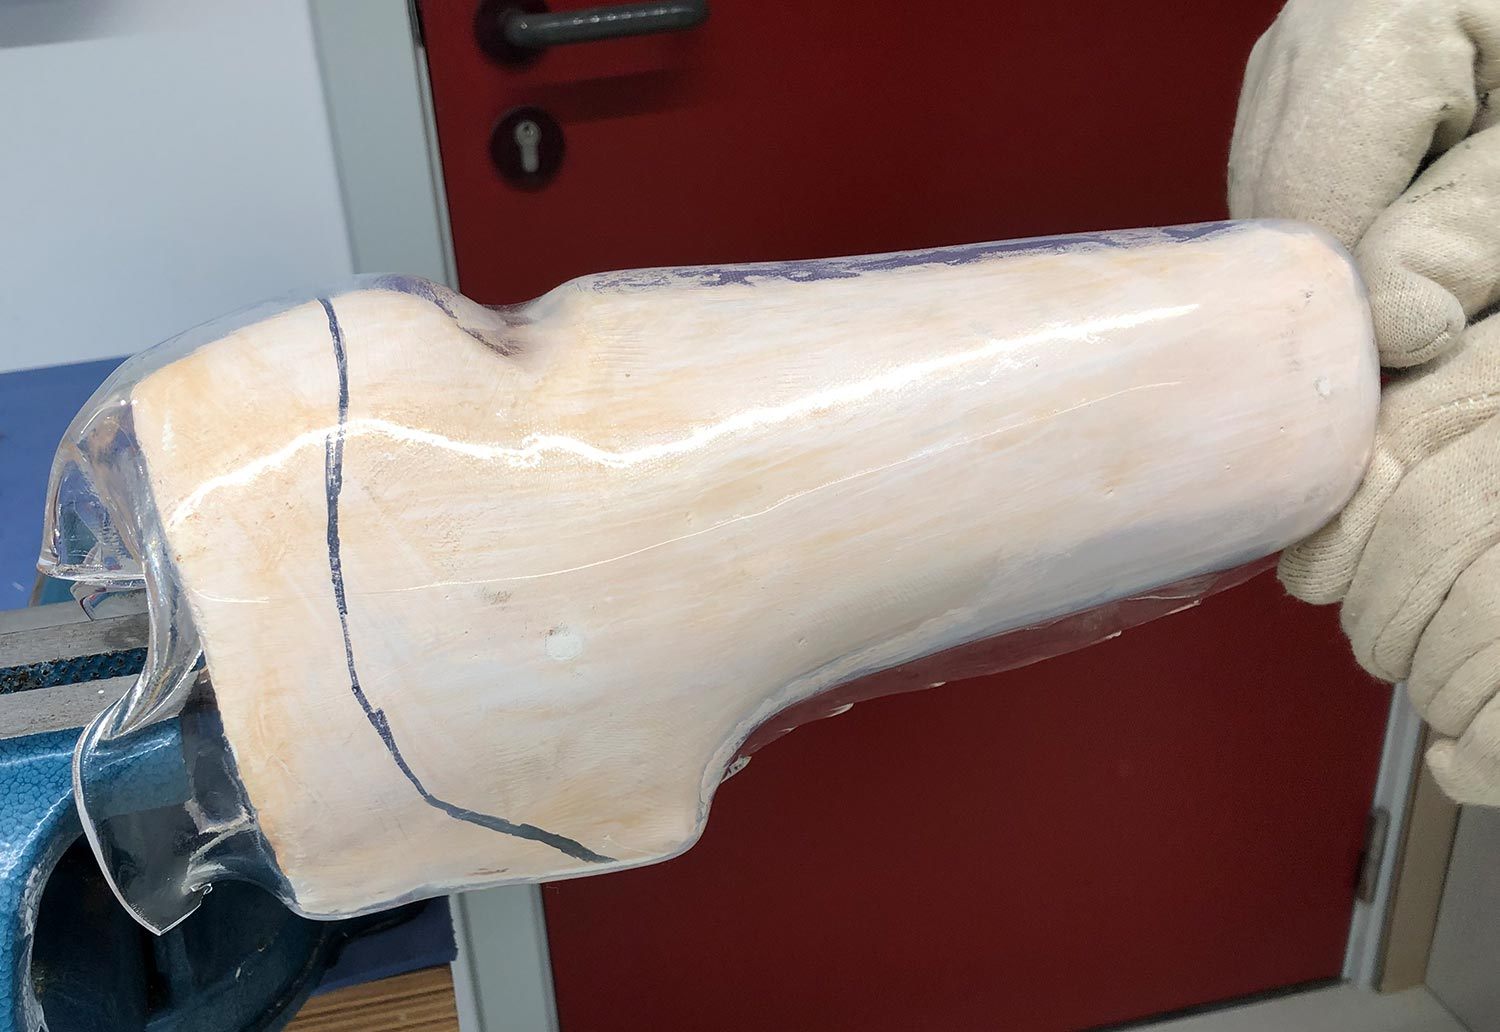 Two gloved hands moulding a transtibial prosthetic socket.